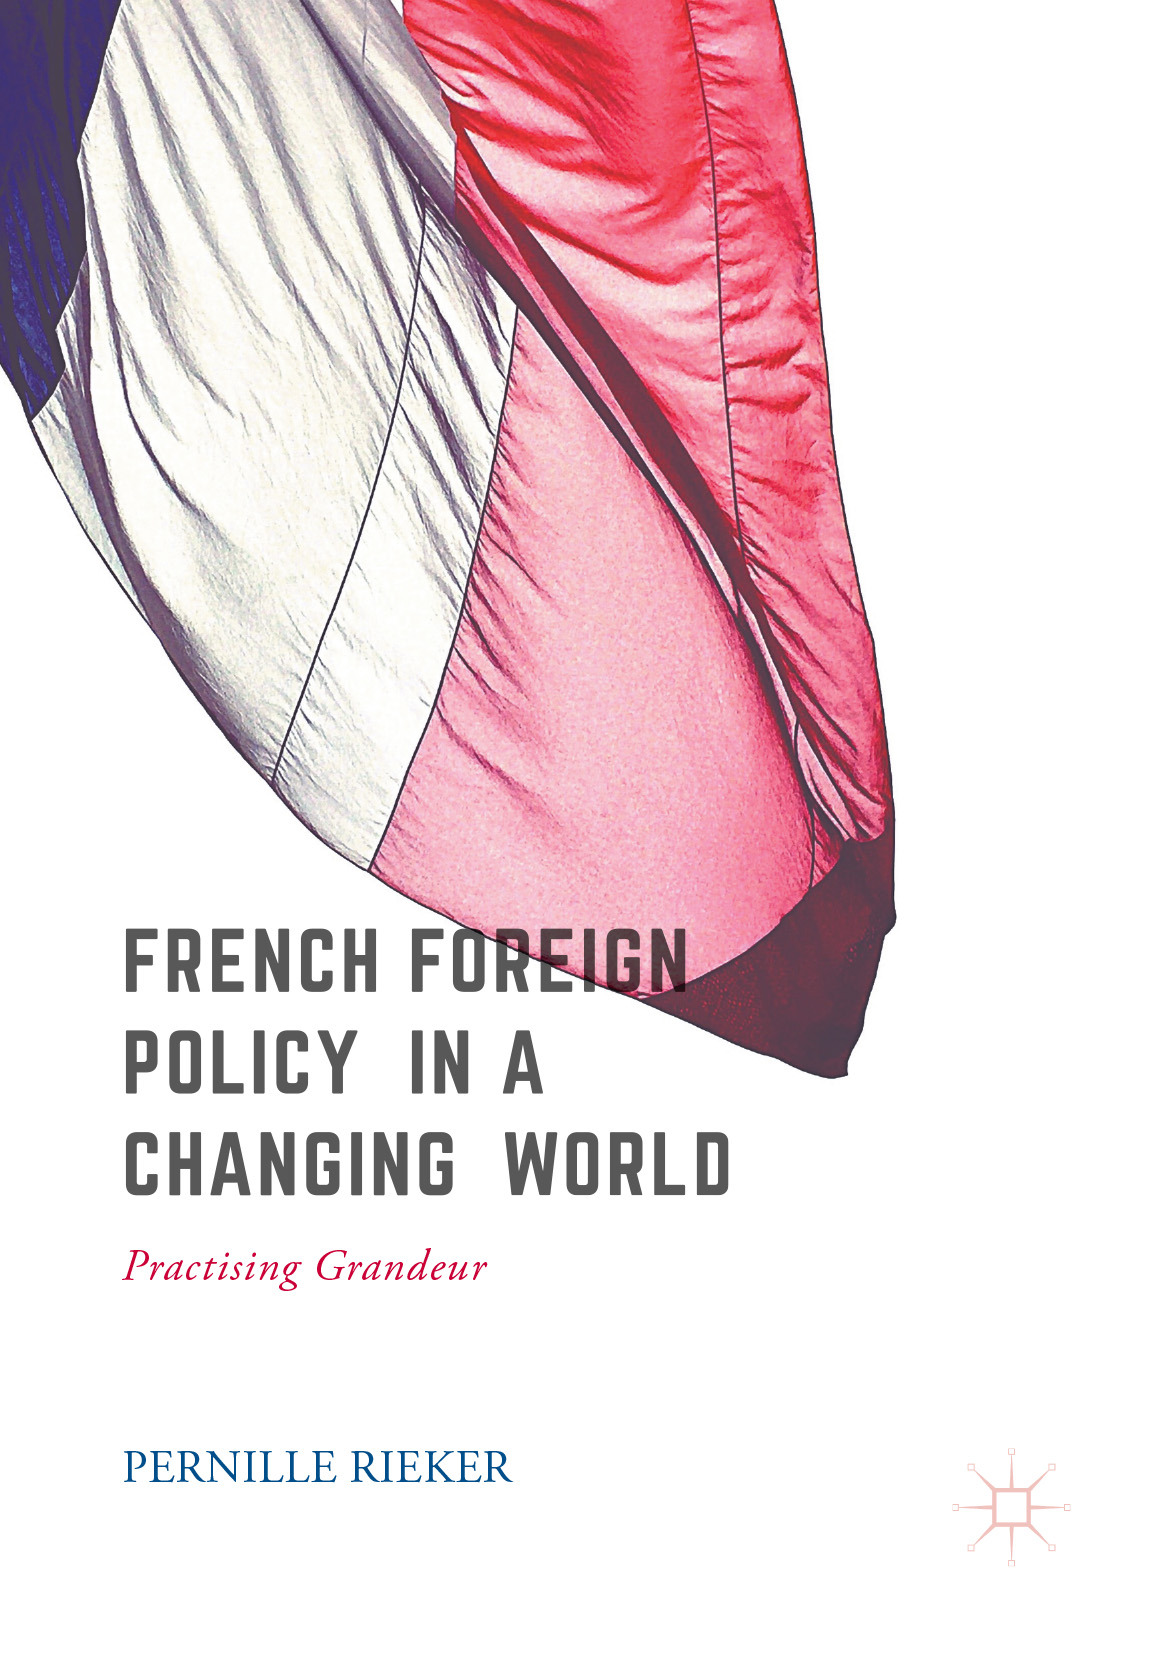 Rieker, Pernille - French Foreign Policy in a Changing World, ebook